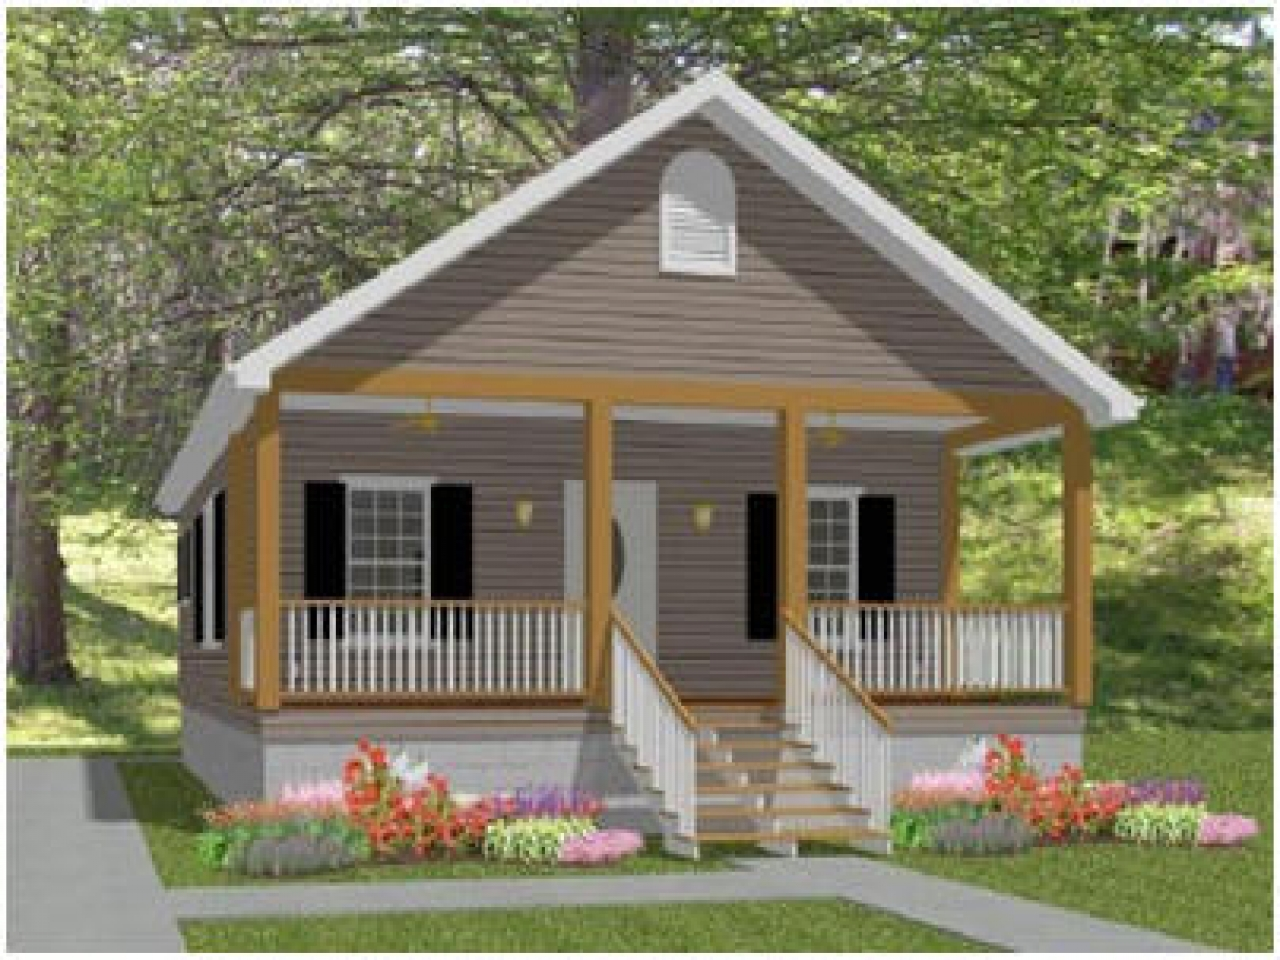 Small Cottage Designs: Small Cottage House Plans With Porches Small Country House